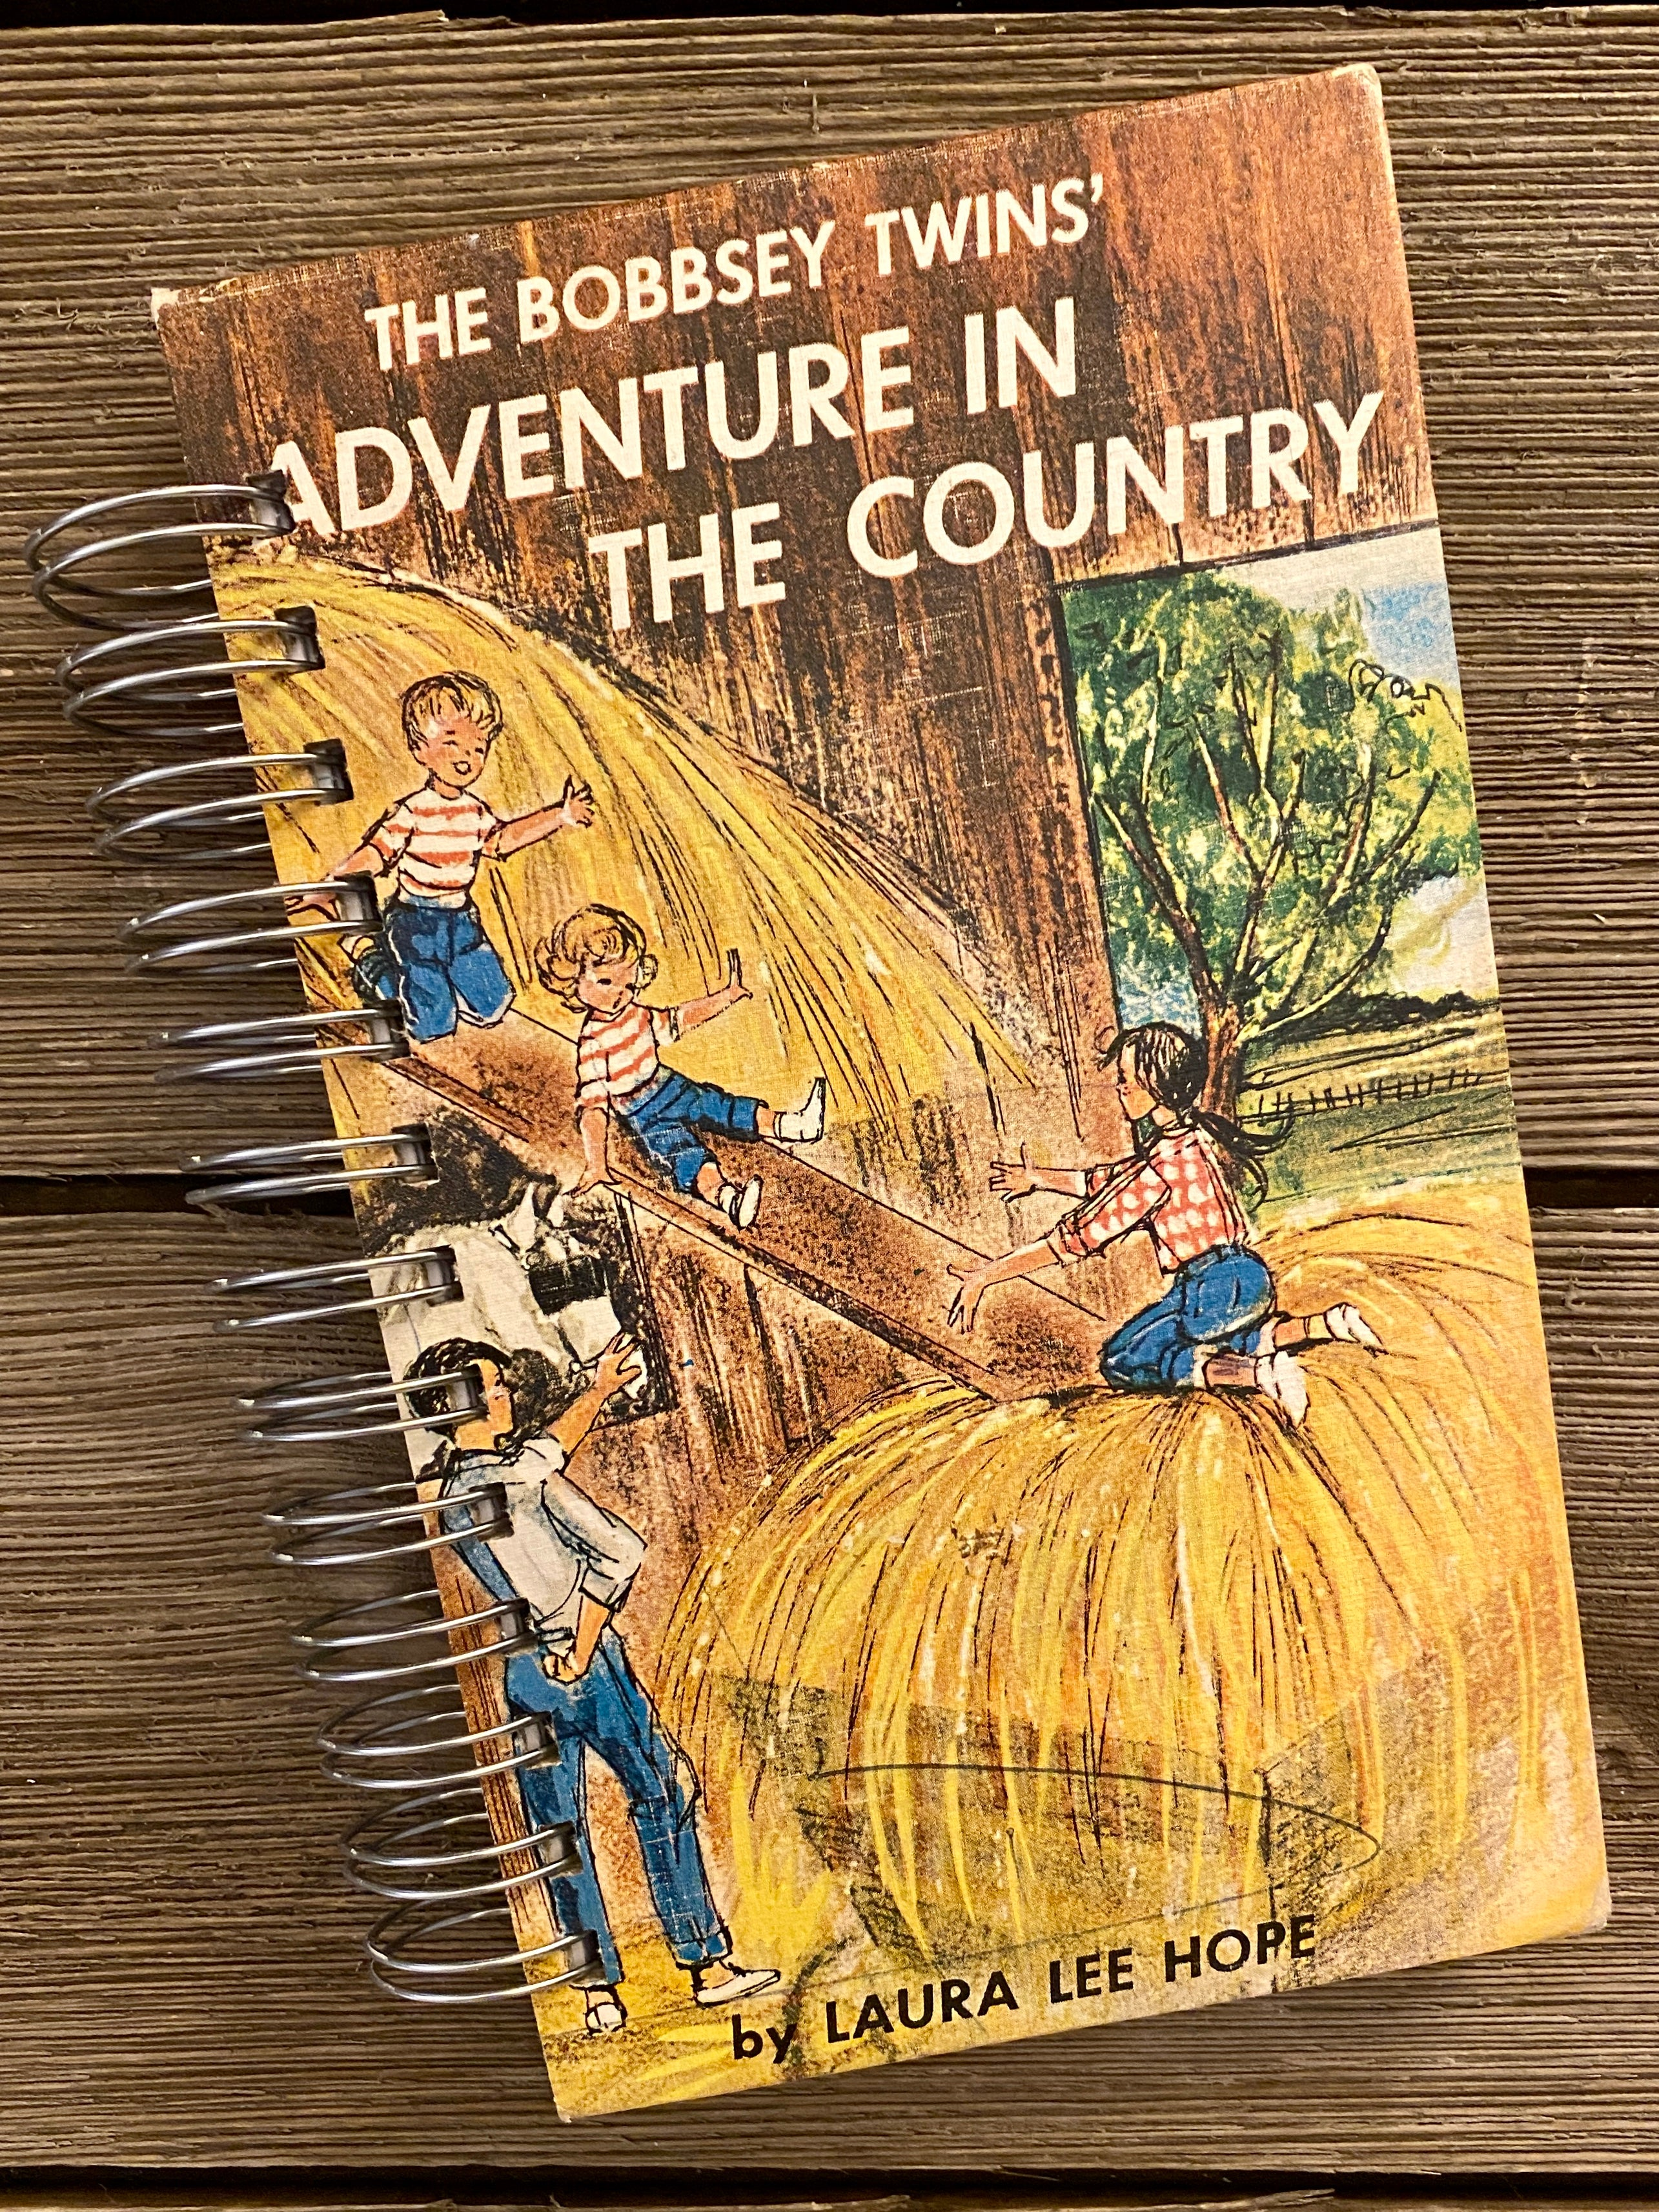 The Bobbsey Twins Adventure in the Country